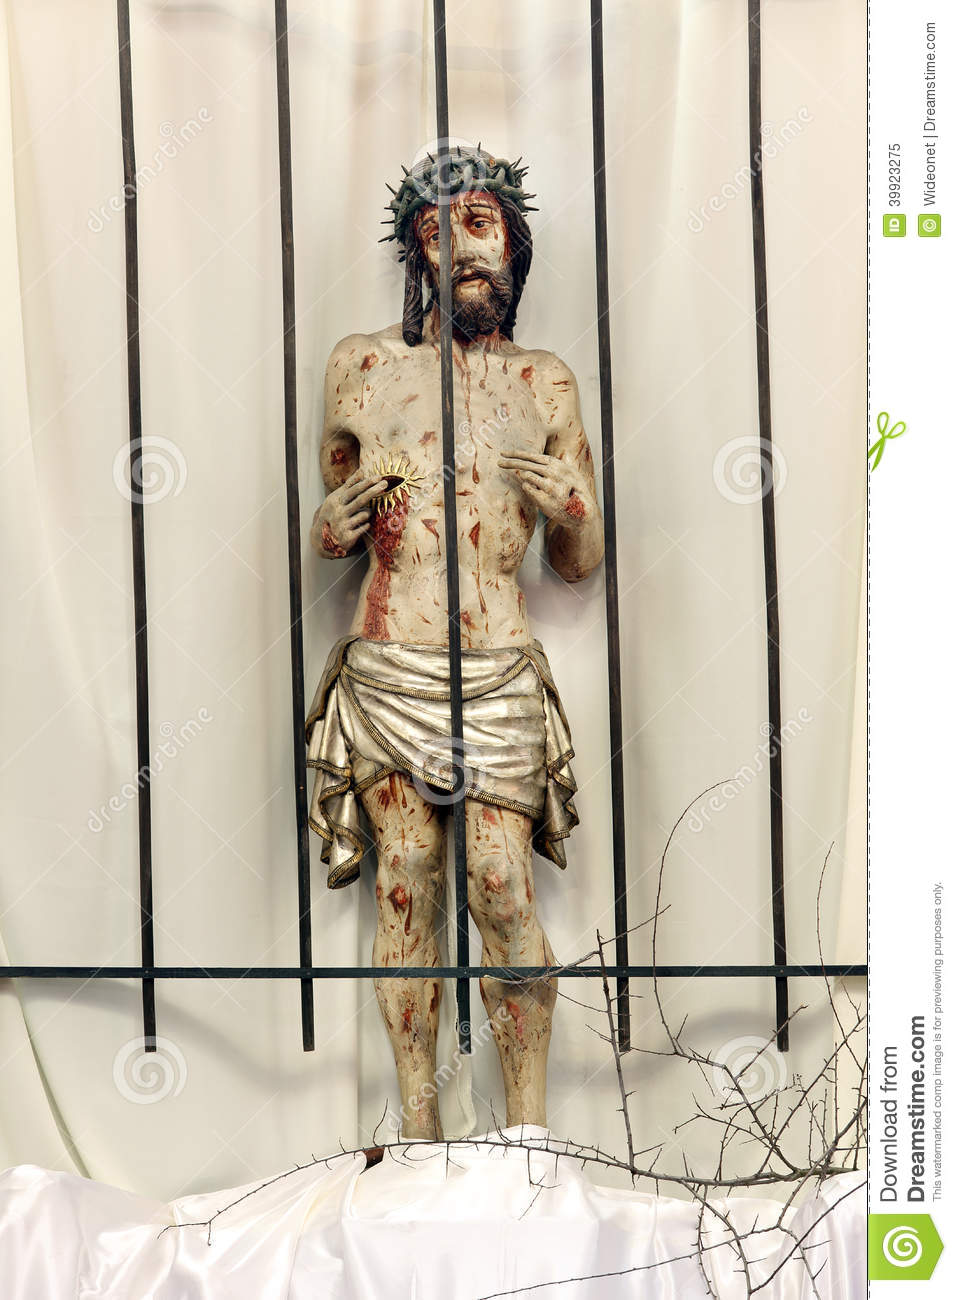 Jesus Behind Bars In Prison Wooden Figure Of Jesus In The